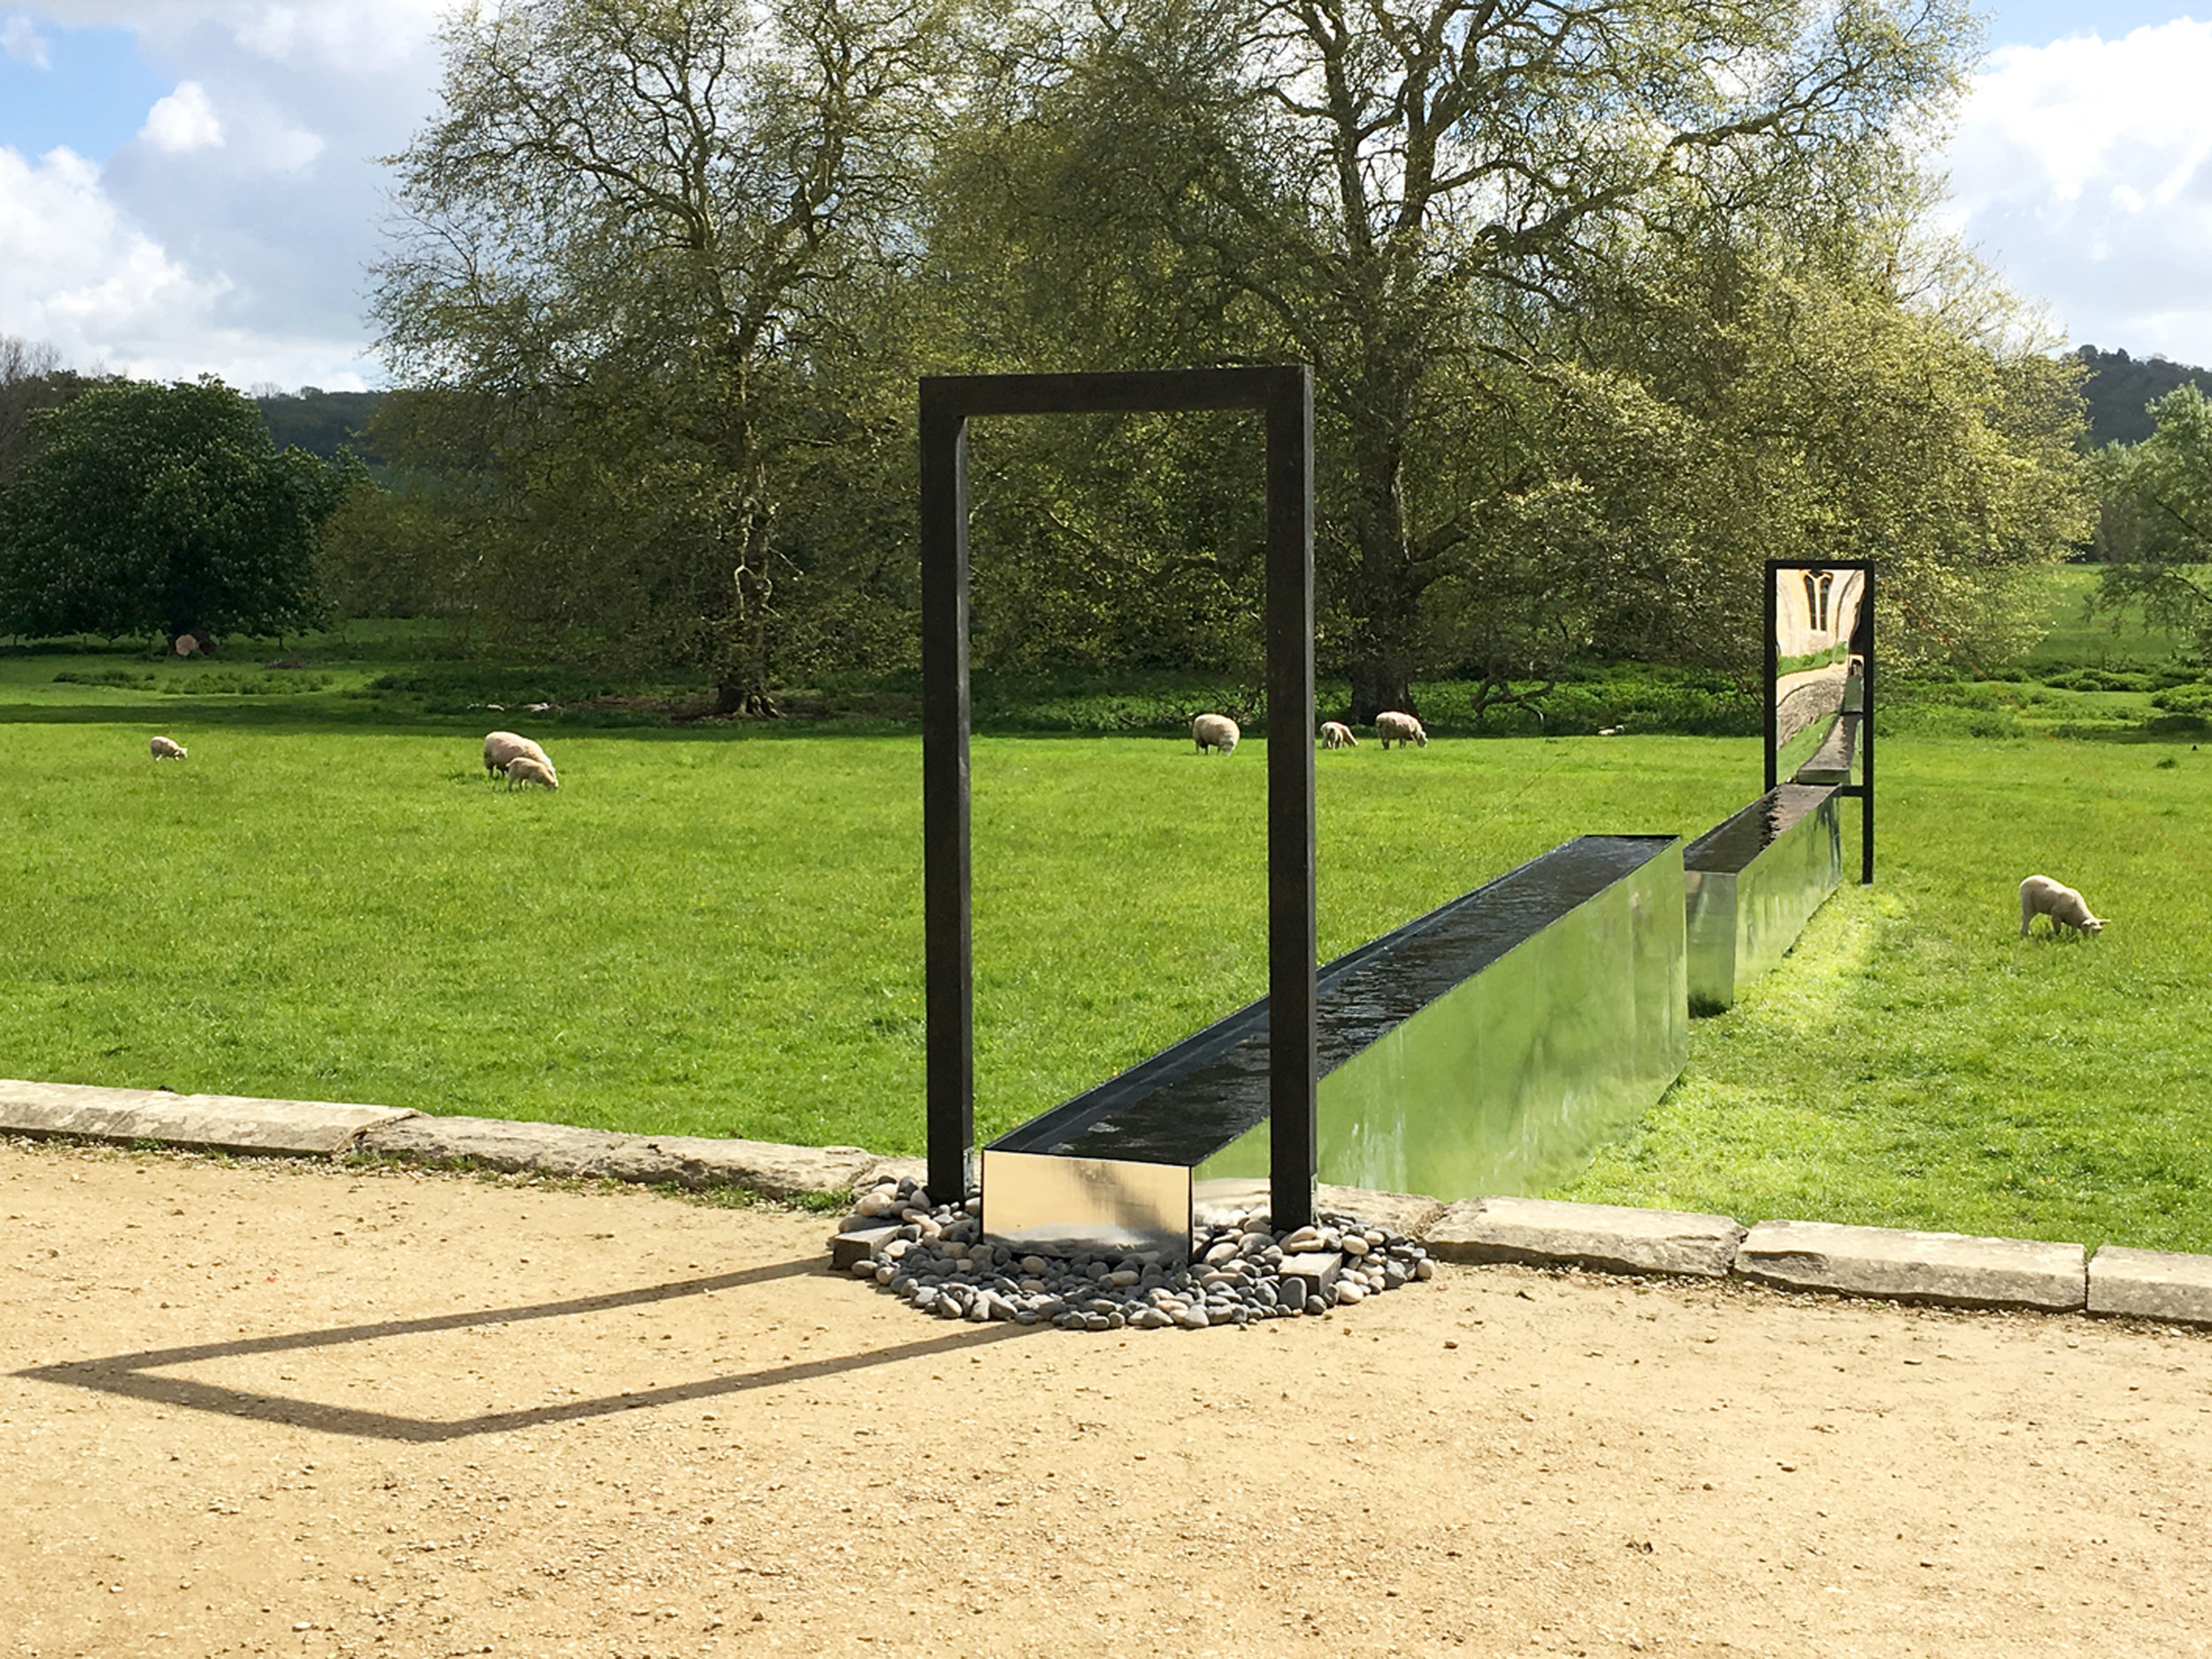 Channel of Peace art installation by ALT-Architecture at Lacock Abbey National Trust - channel of reflective water - frames in landscape - water meadow with sheep